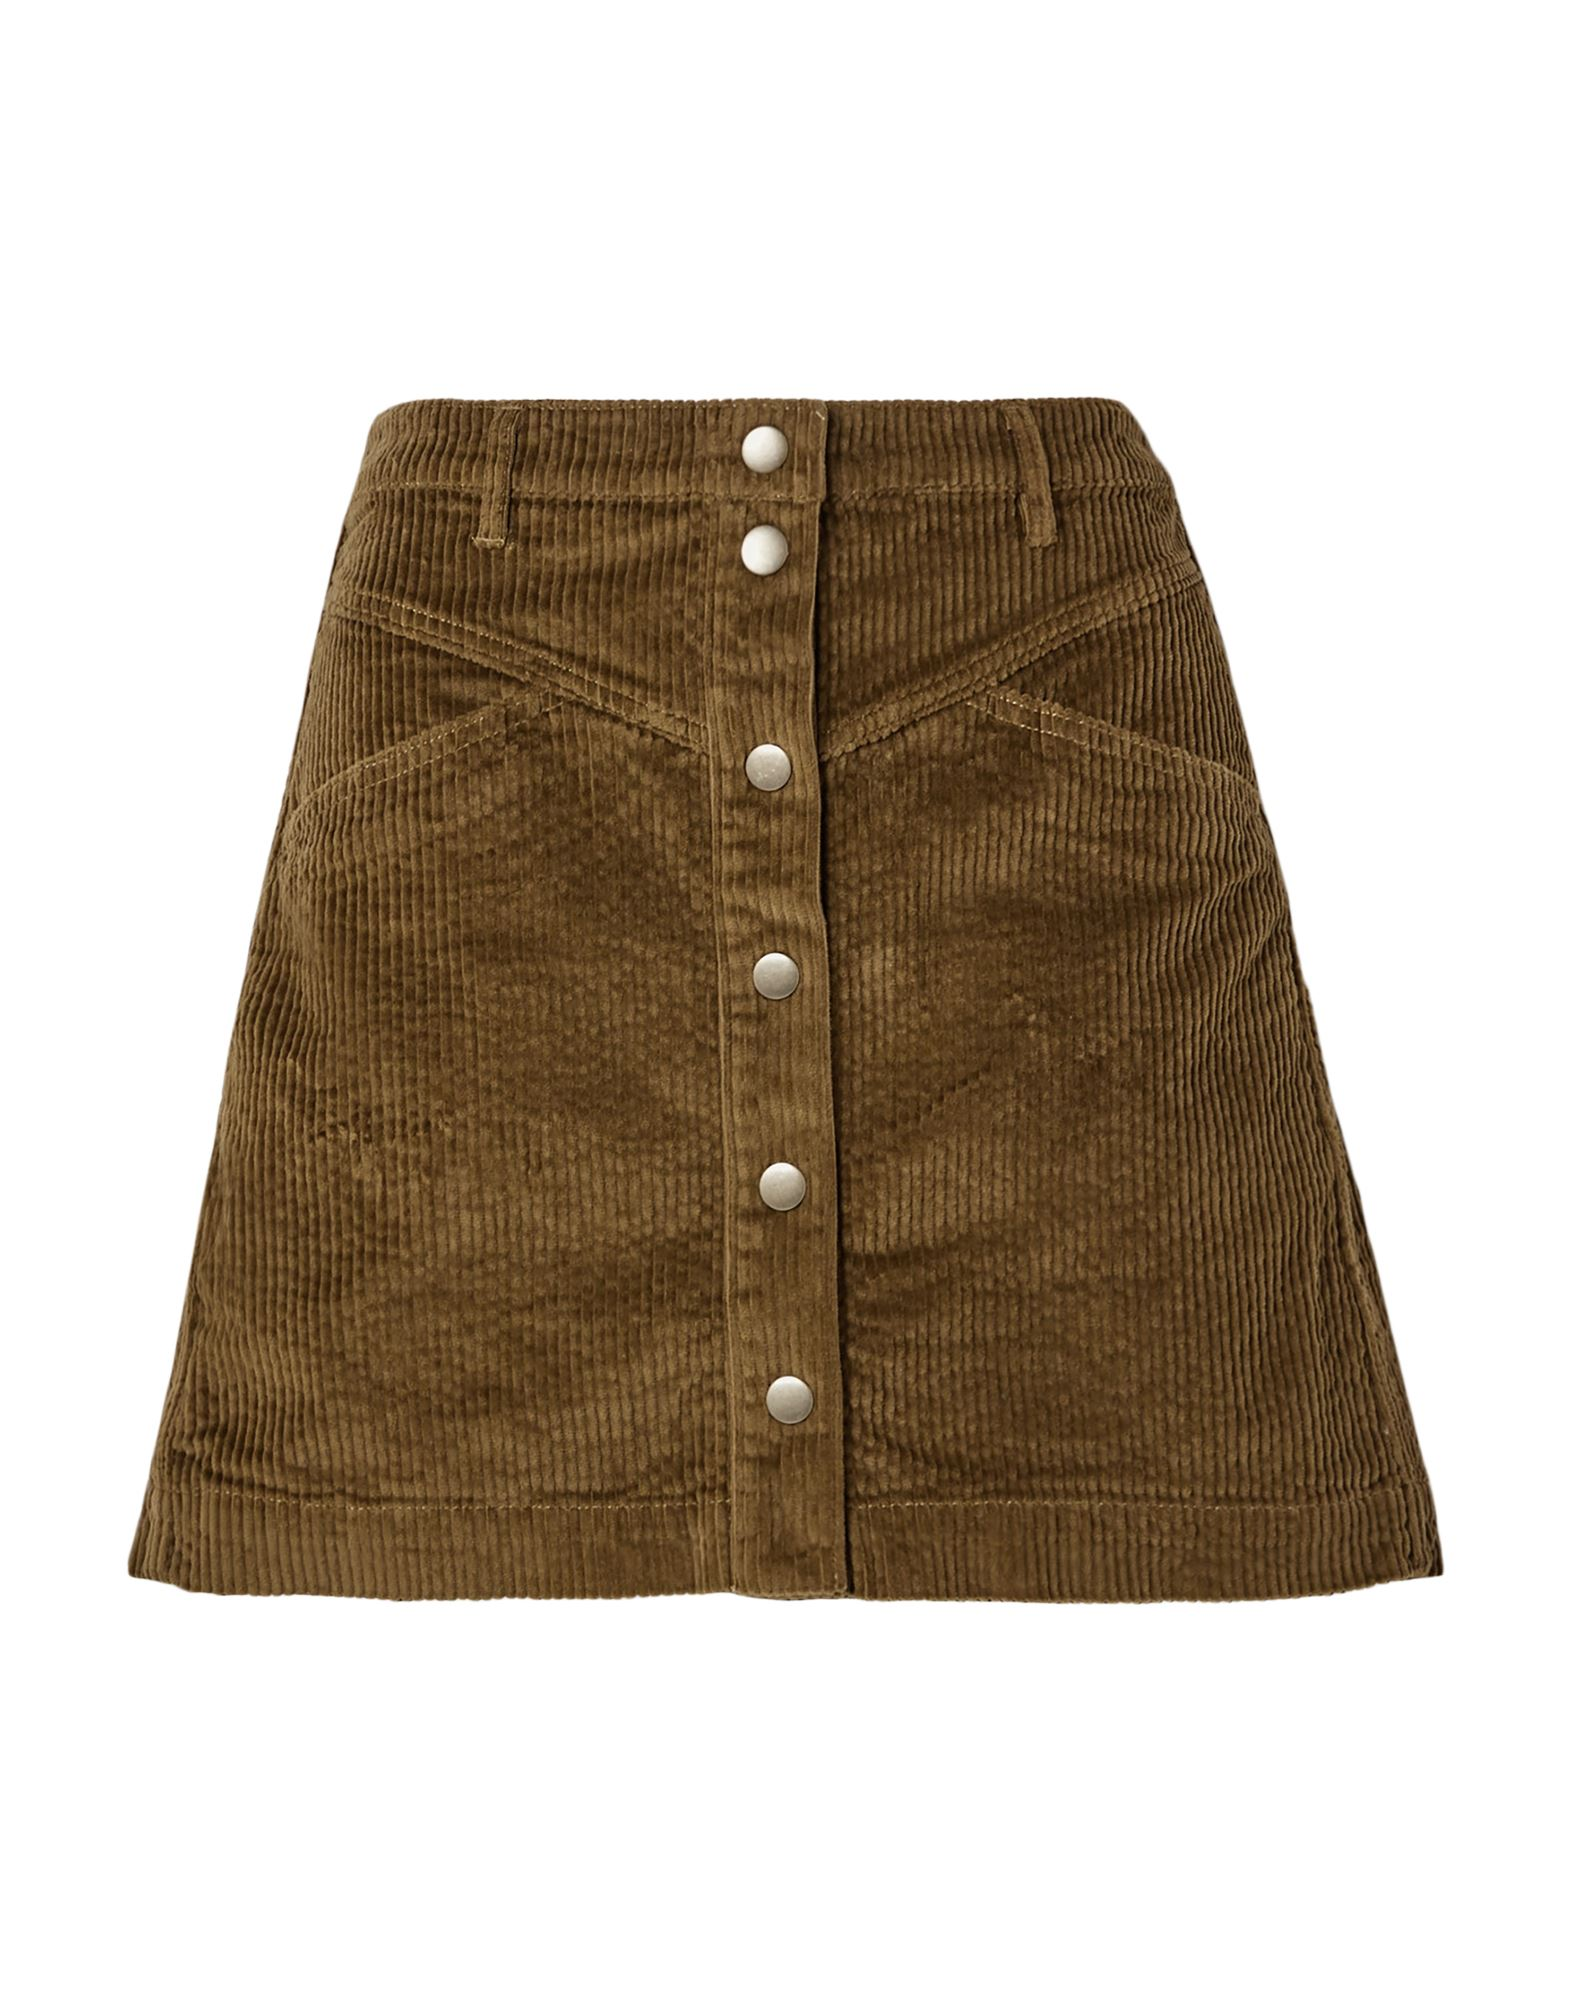 MADEWELL Mini skirts. velvet, ribbed, no appliqués, basic solid color, multipockets, front closure, snap buttons fastening, unlined, stretch. 98% Cotton, 2% Elastane